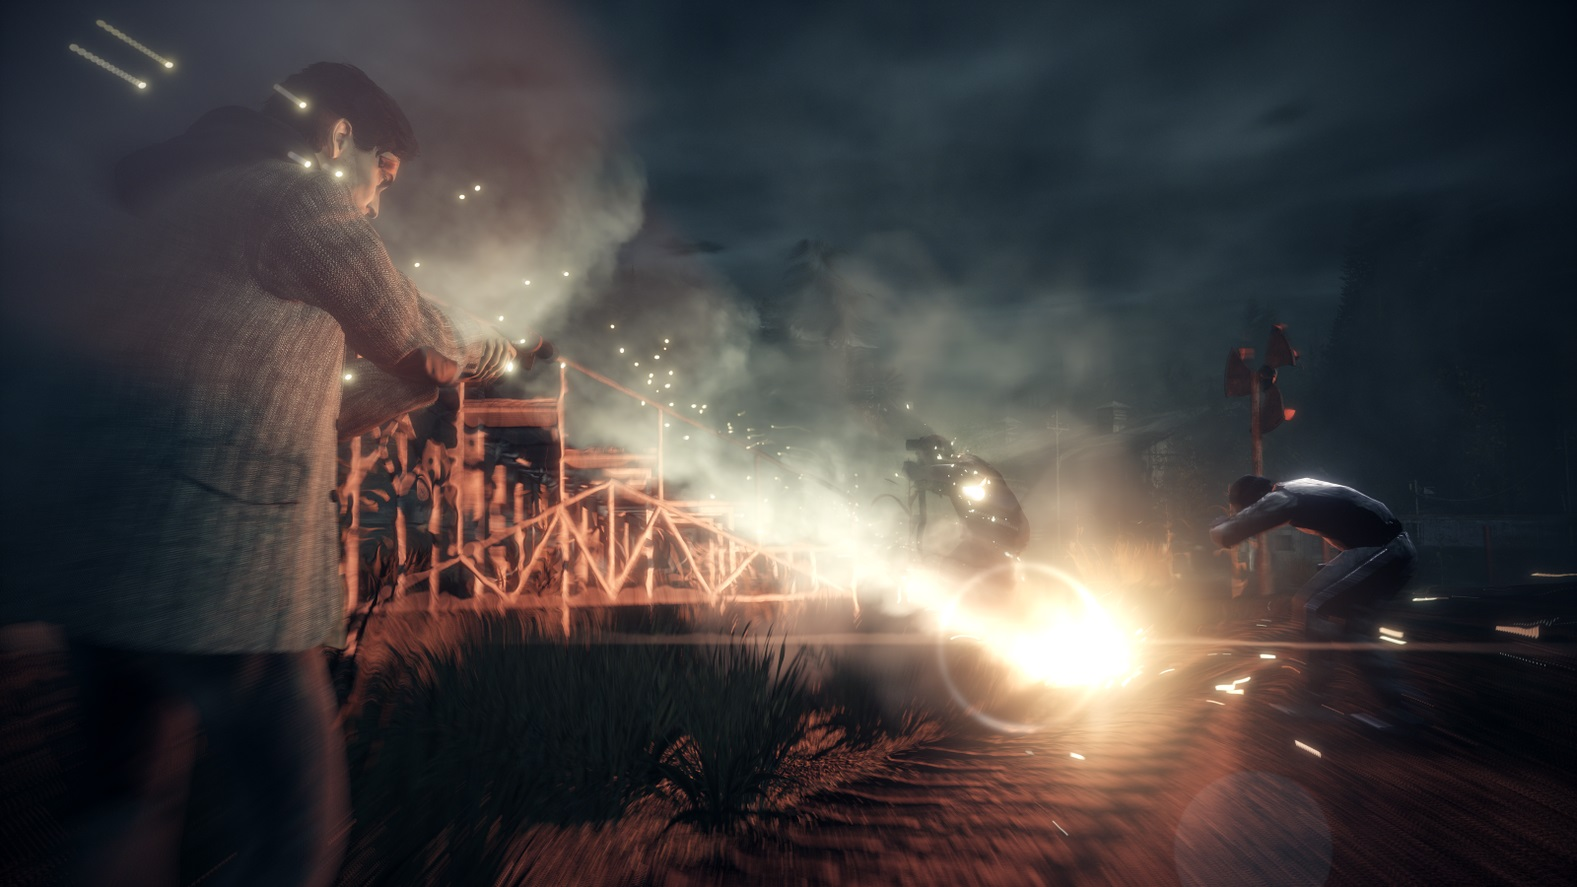 Alan Wake Remastered is great for both longtime fans and those who have never had the opportunity to play it